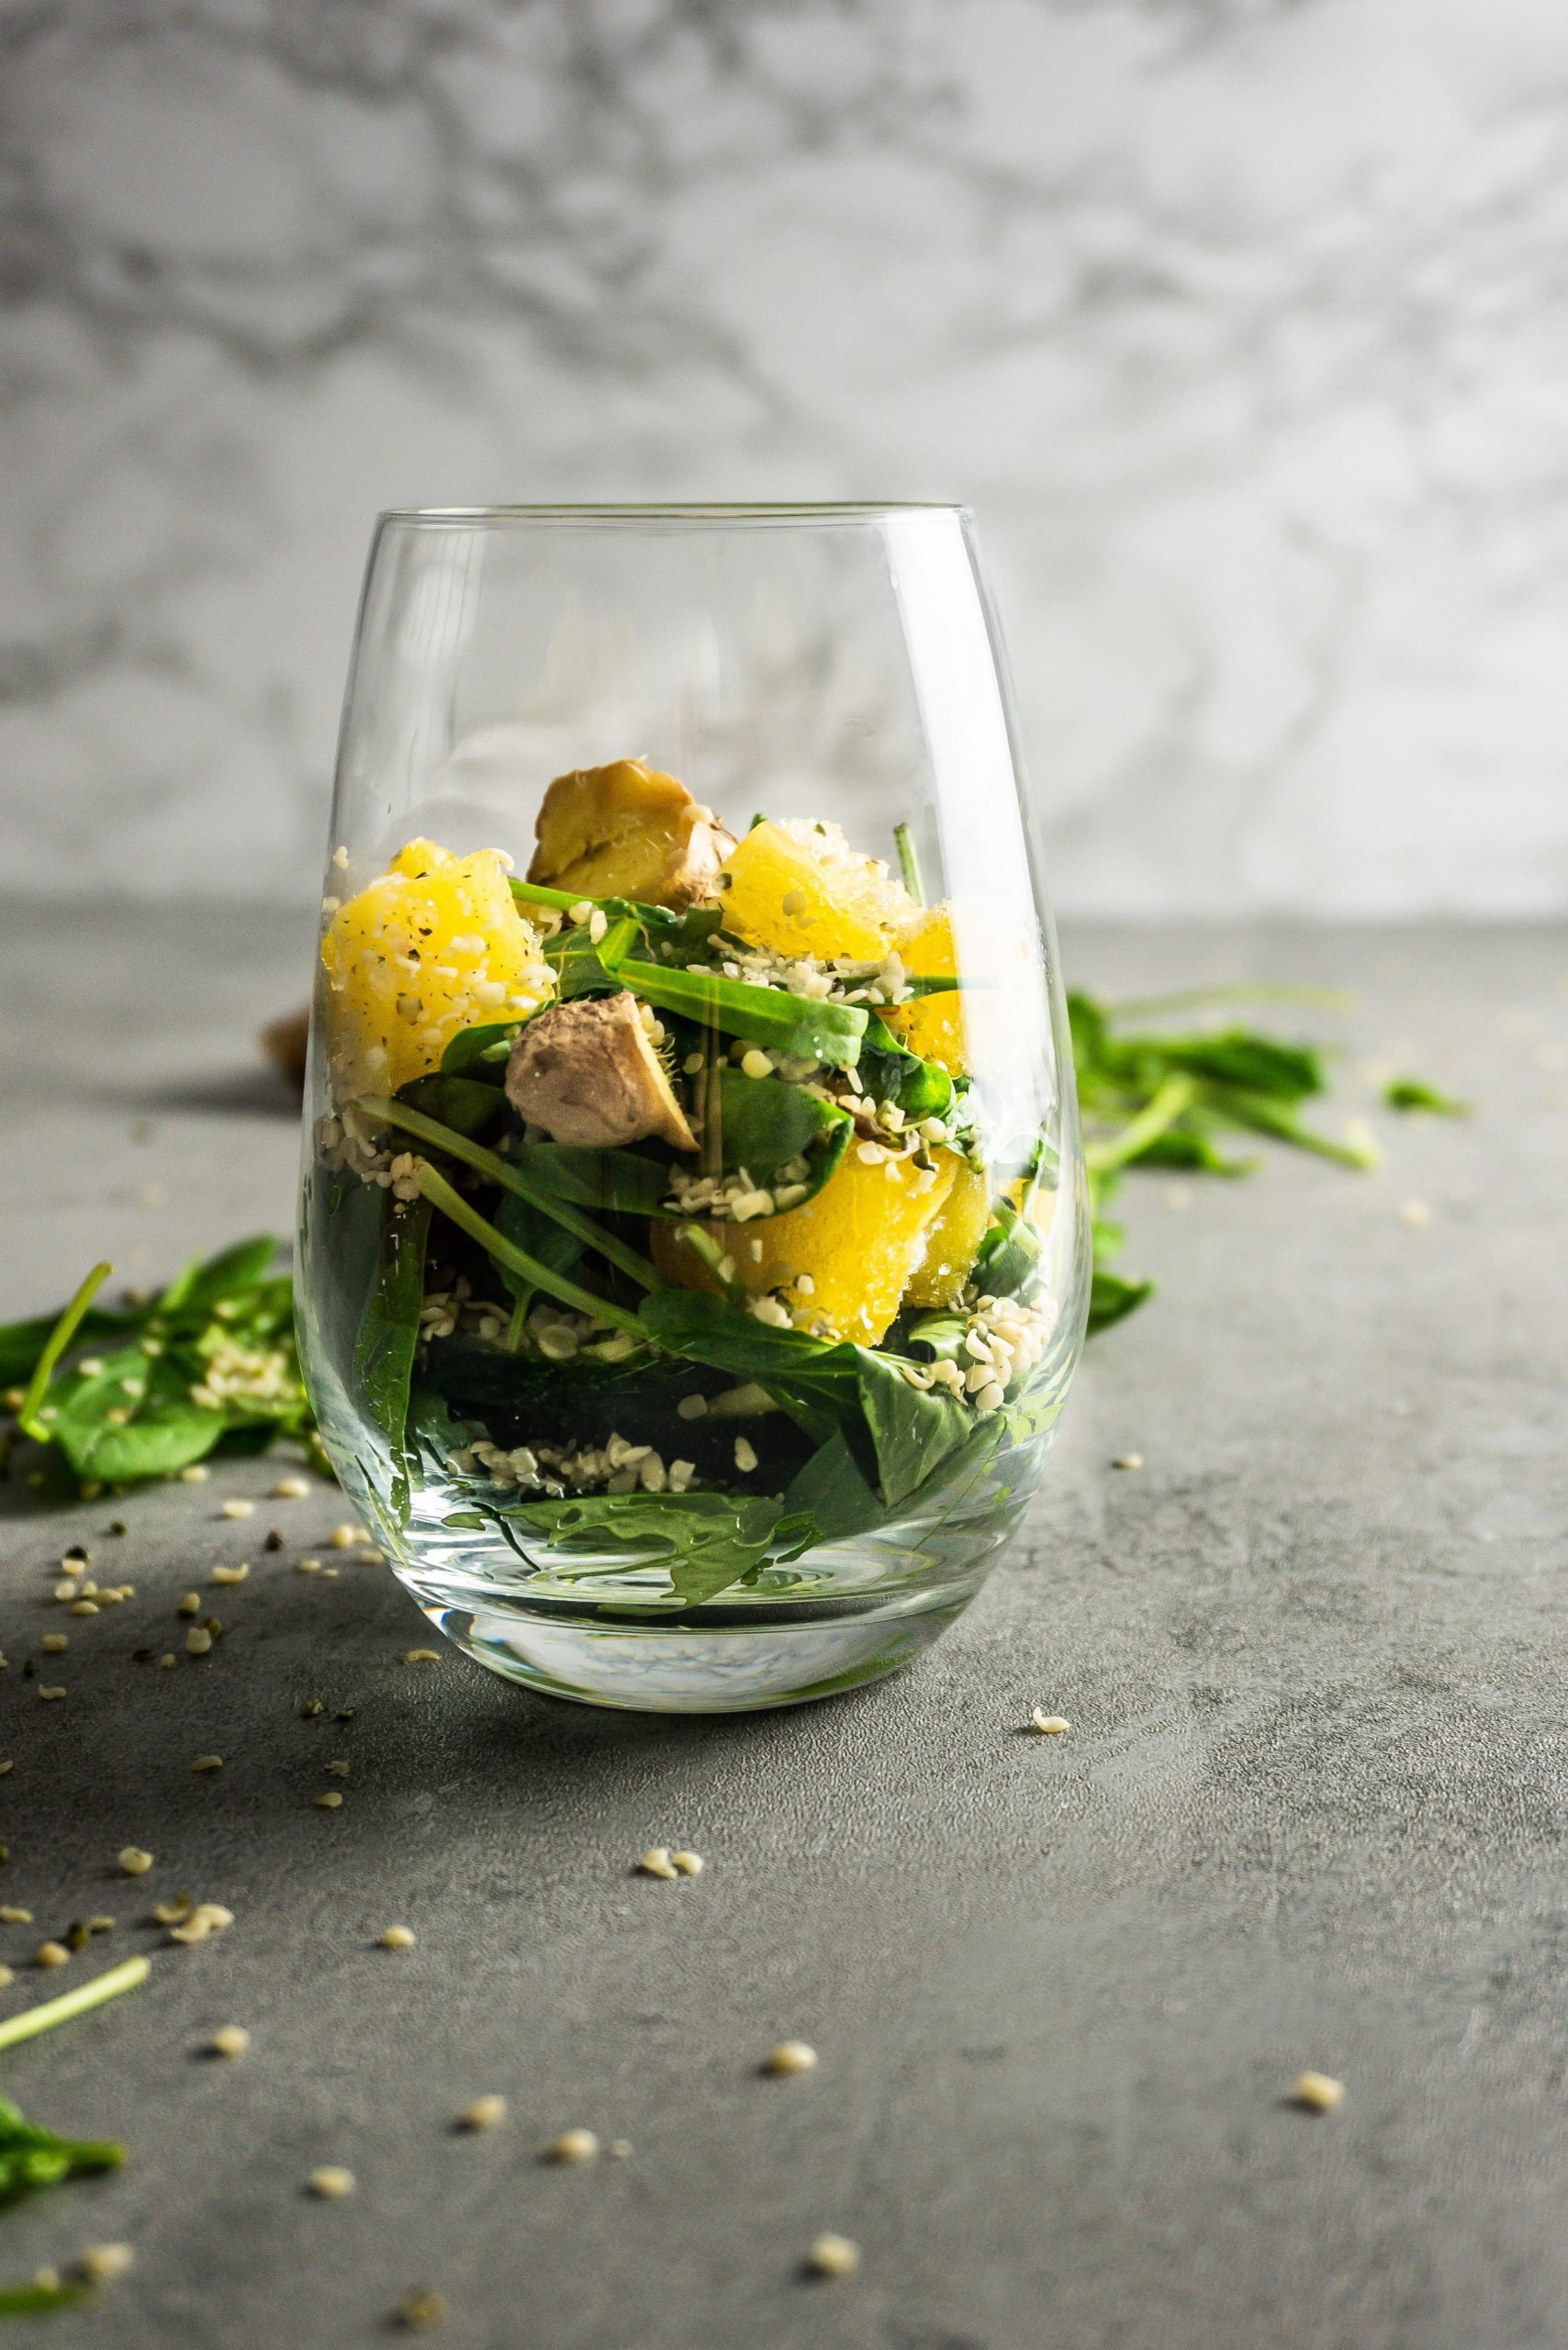 Ginger, pineapple, cucumber, spinach, and hemp seeds in a glass